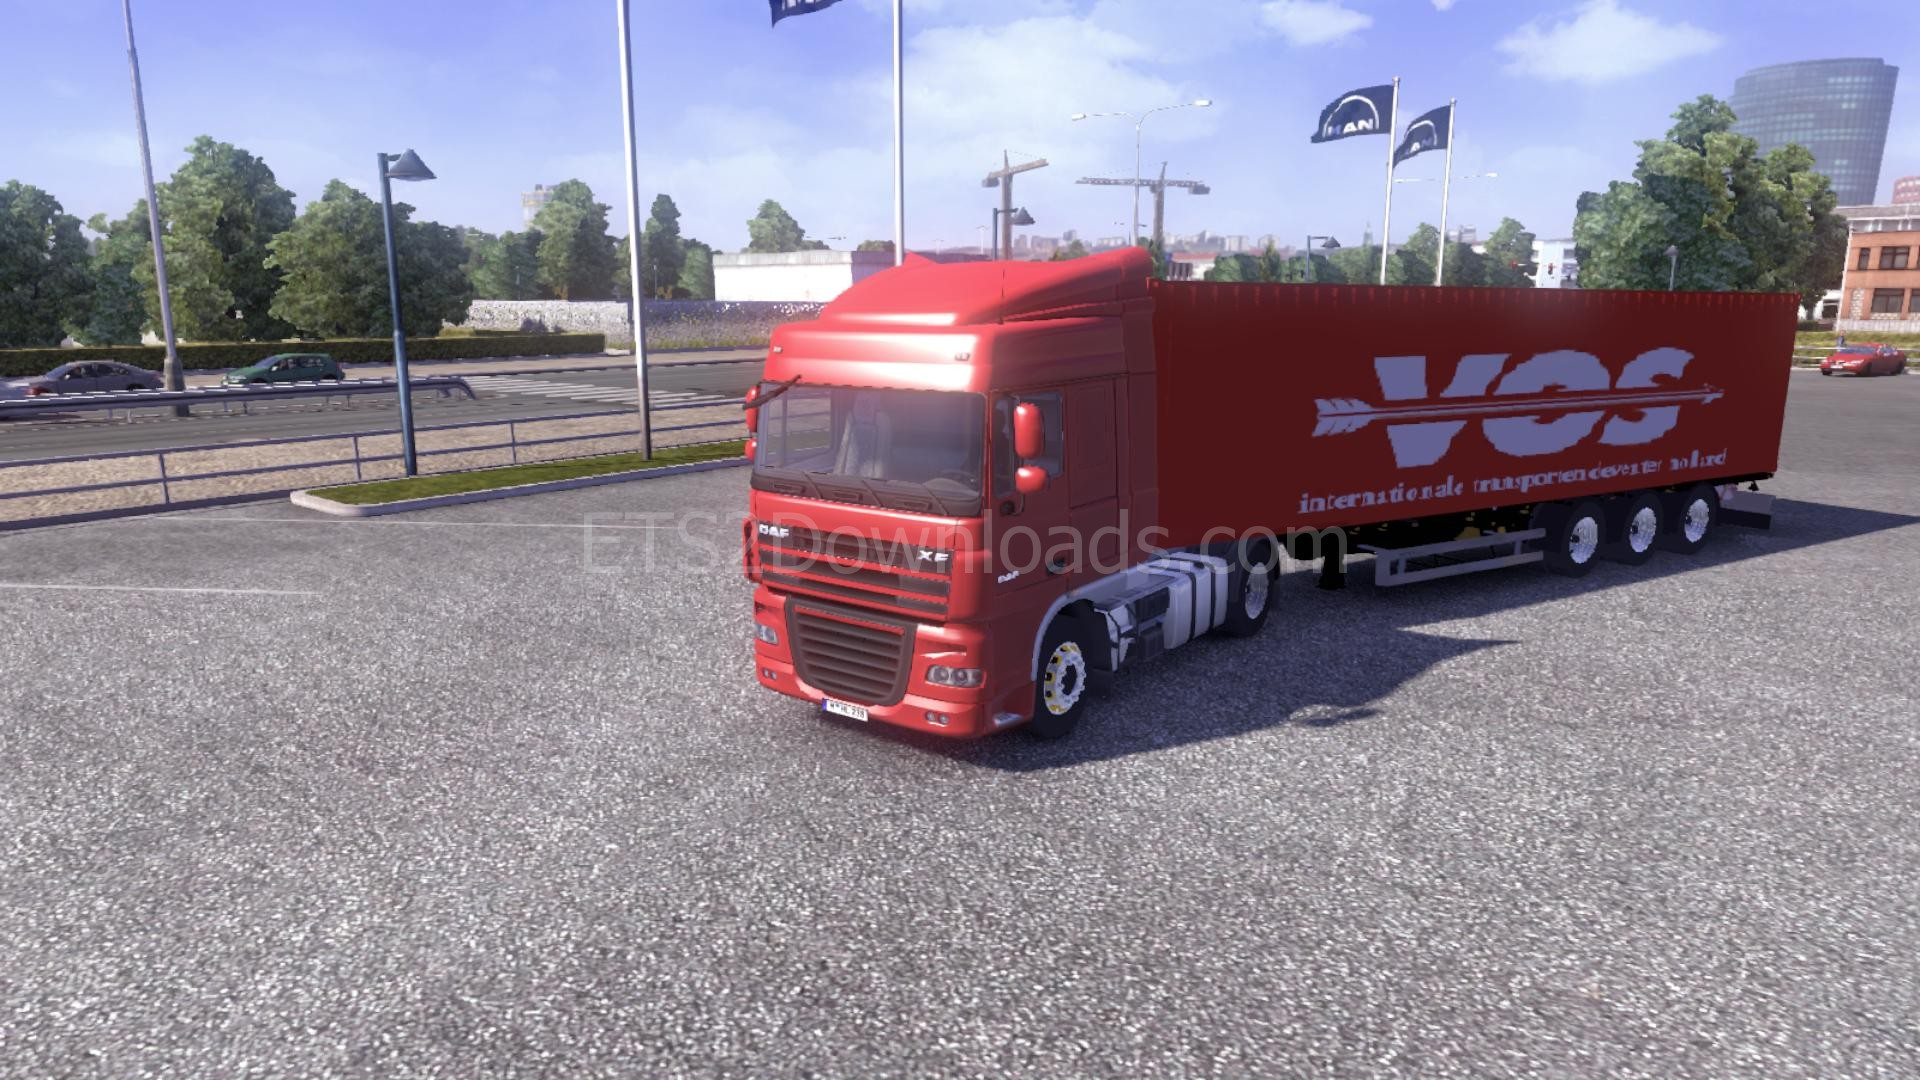 vos-container-ets2-2